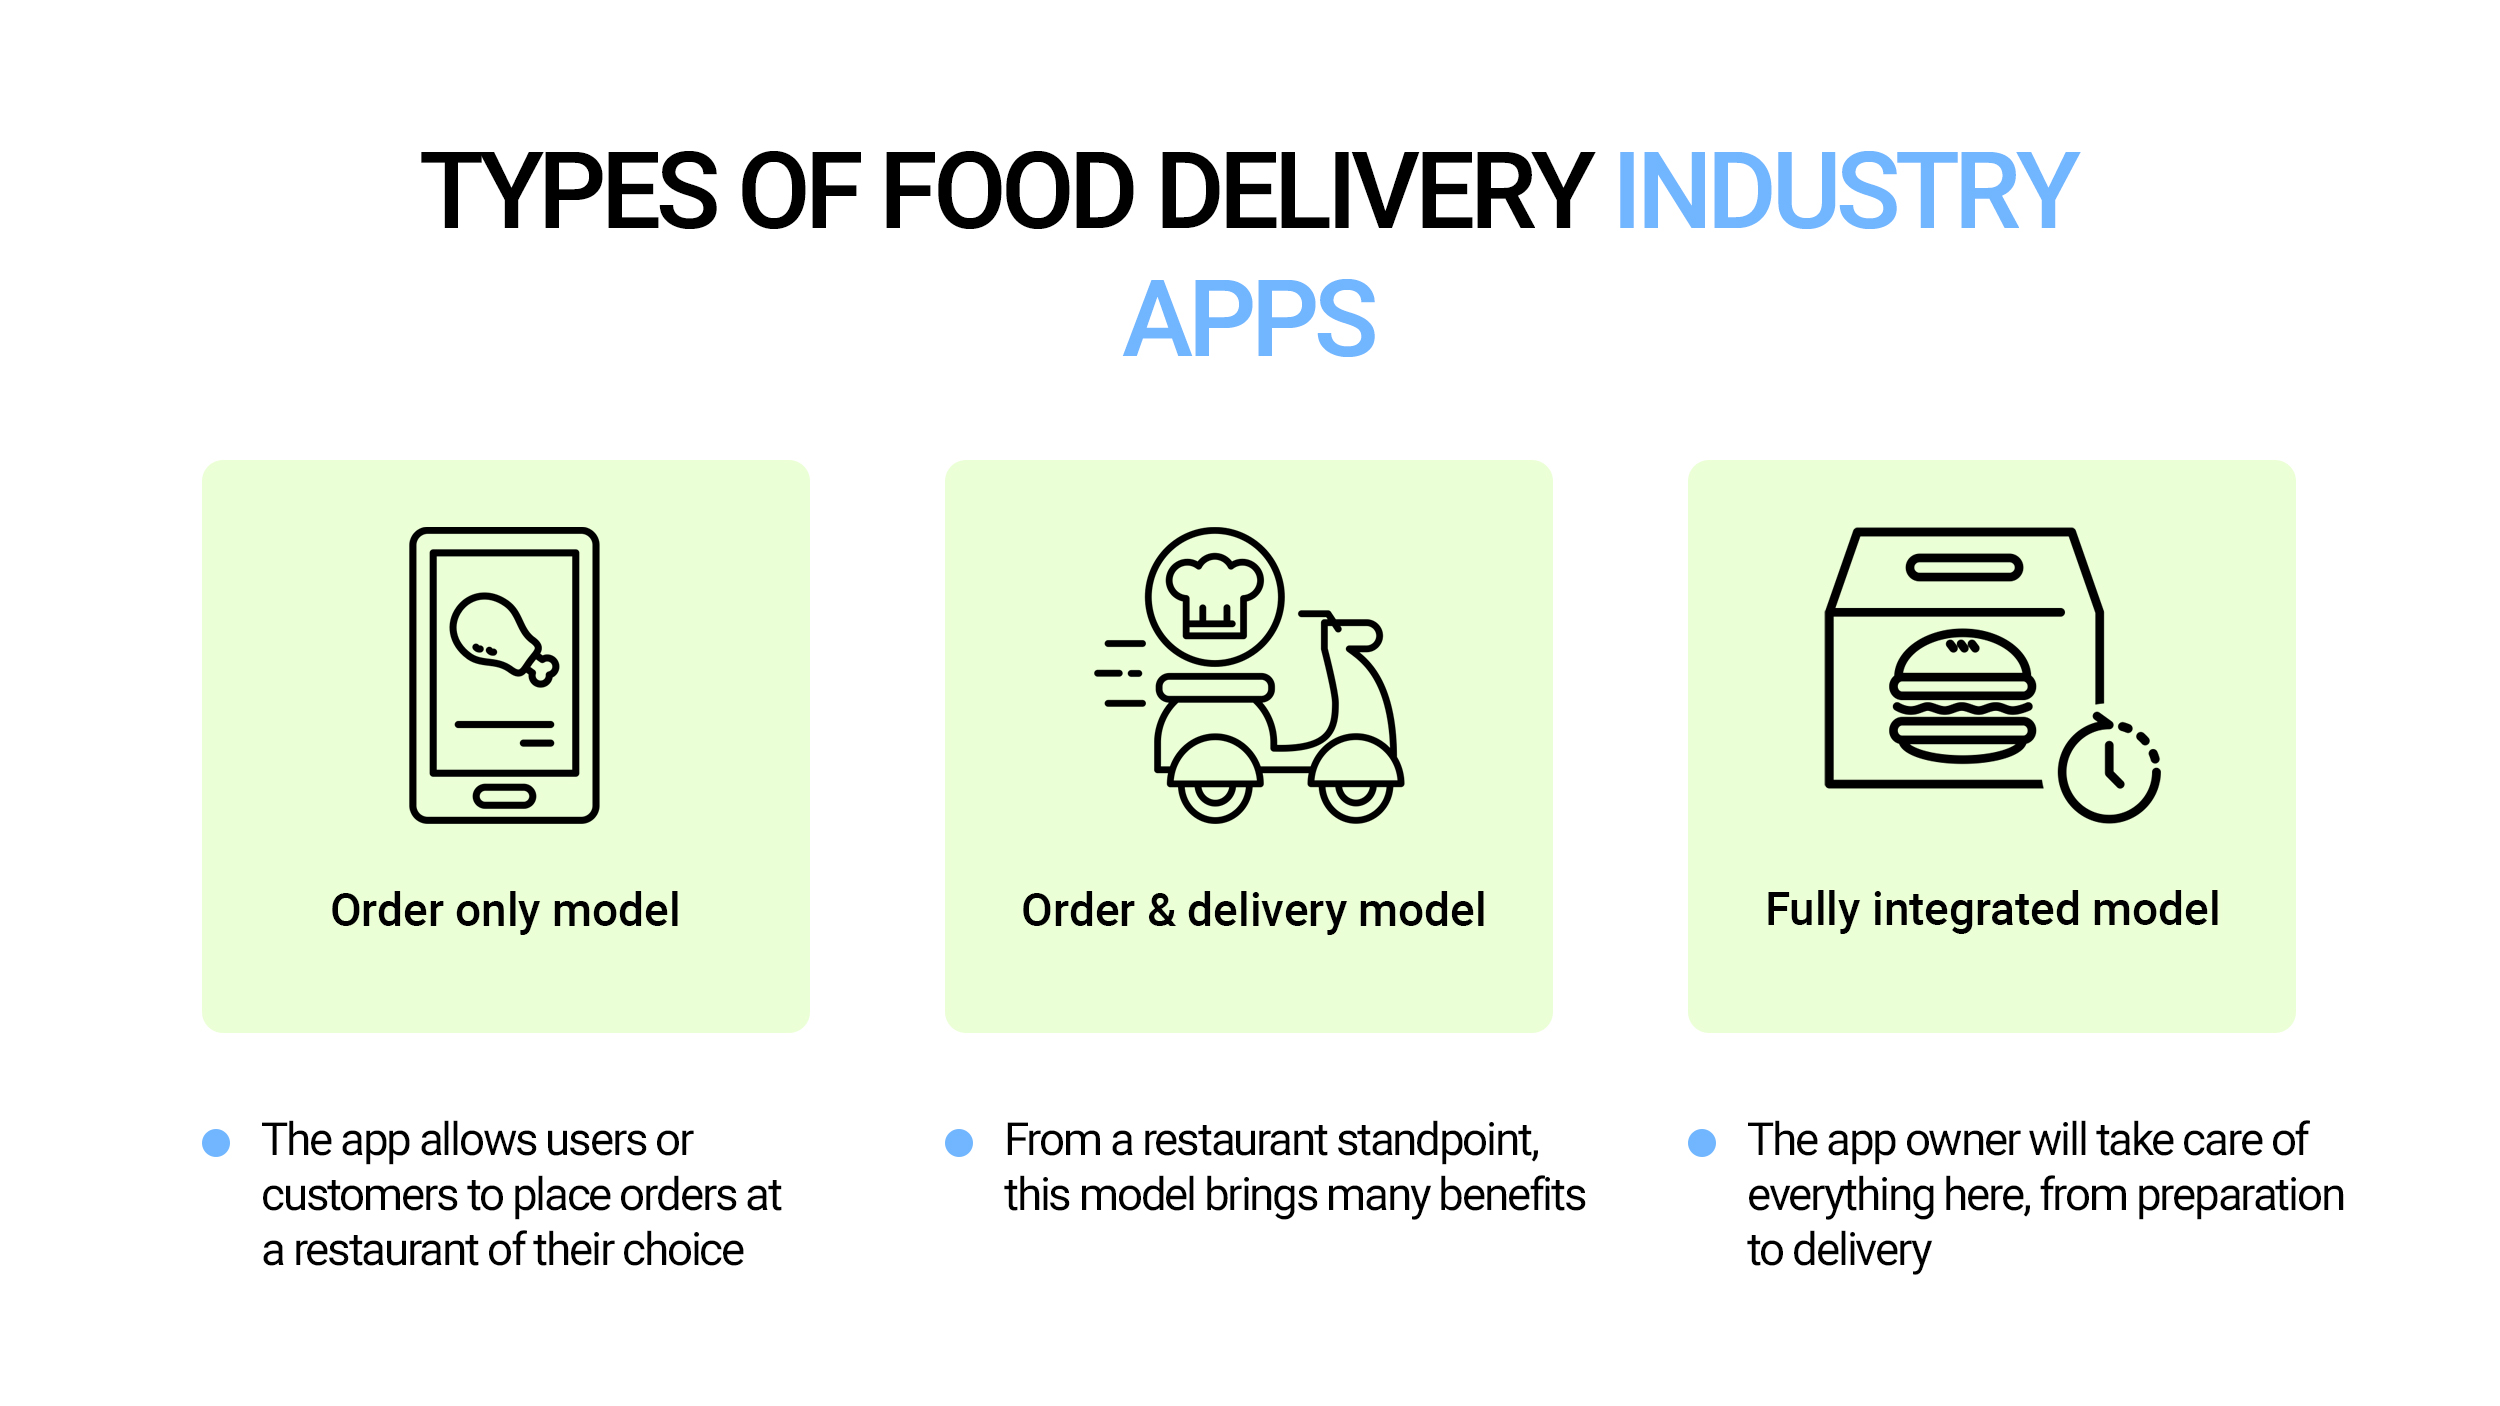 Types of food delivery apps